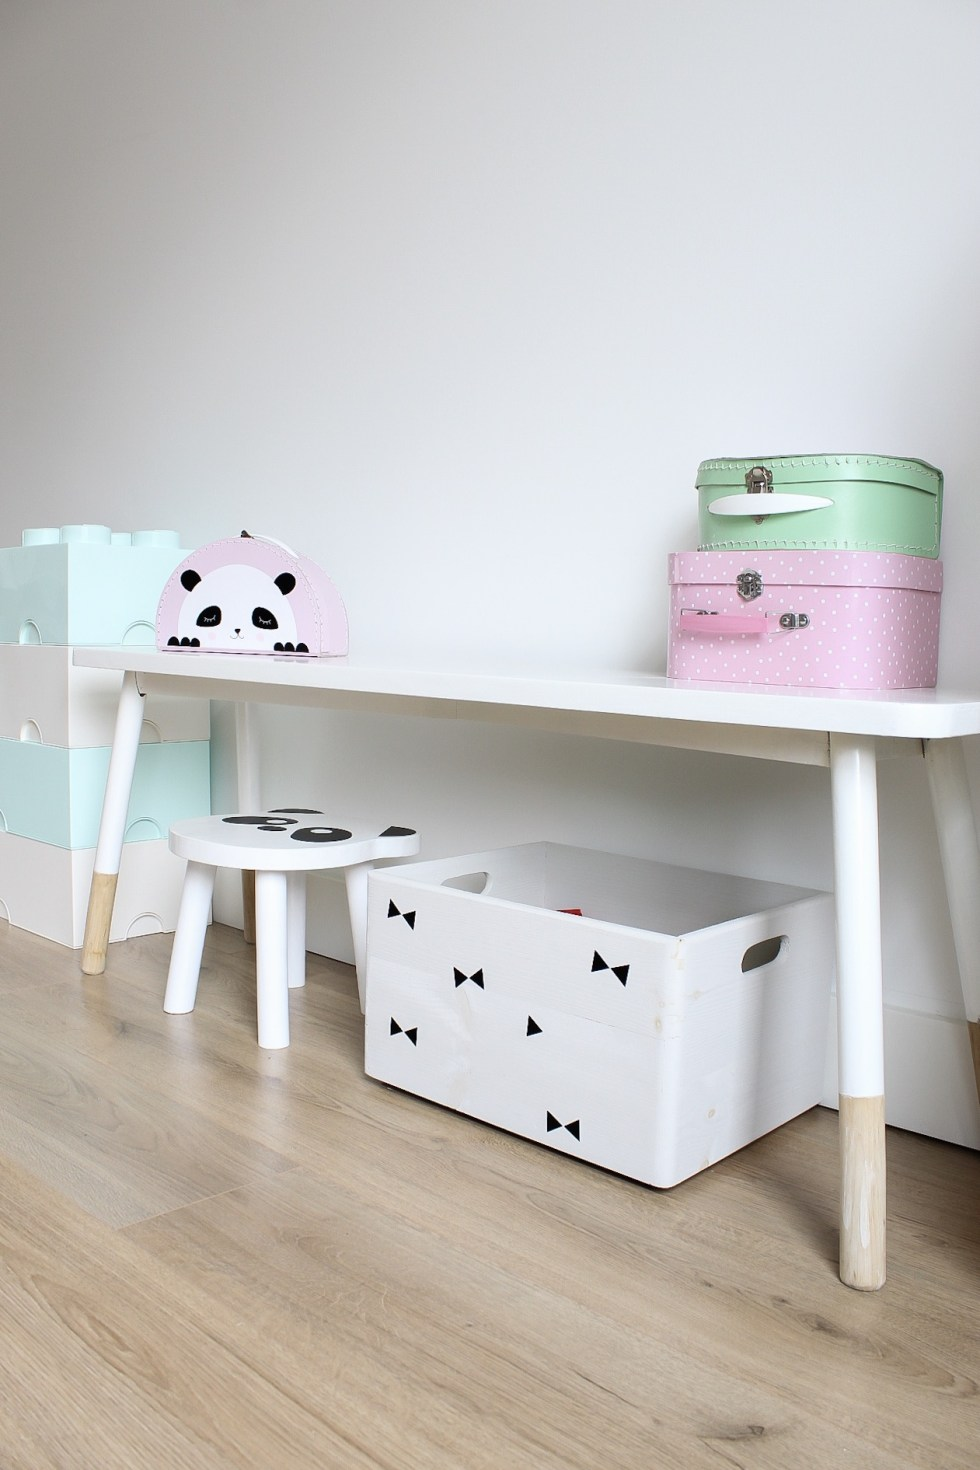 kids blogs, interieur blogger, mama blogger, mamablog, speelhoek, kids corner, playroom, kinderkamer, kids interior, playroom, thathomepage, kinderhoek, speelgoed opruimen, speelgoed opbergen, kinderspullen